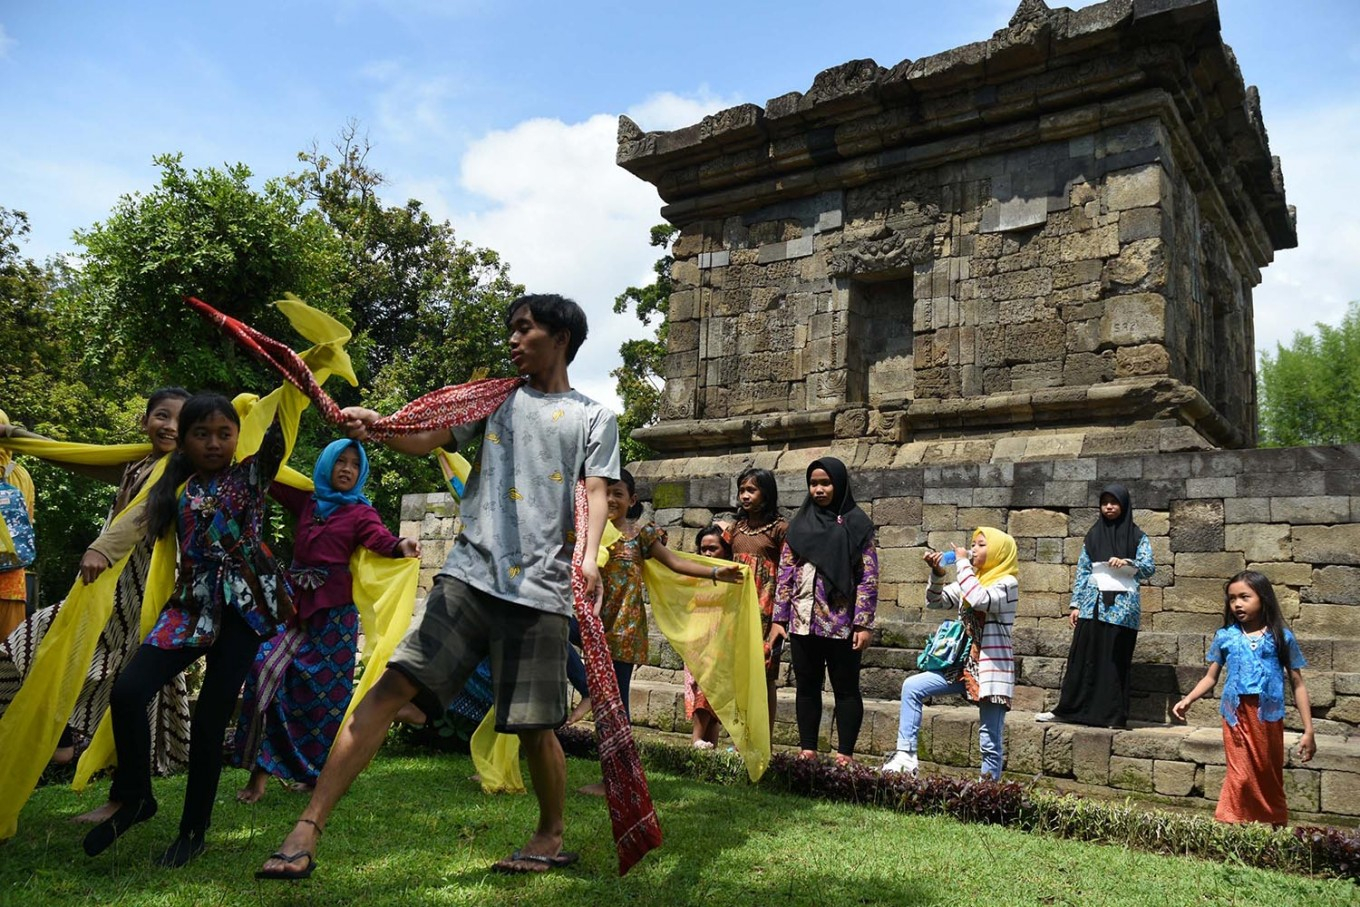 Flow with it: A volunteer teaches students traditional dance moves during the Ajar Pusaka Budaya event. JP/ Aman Rochman